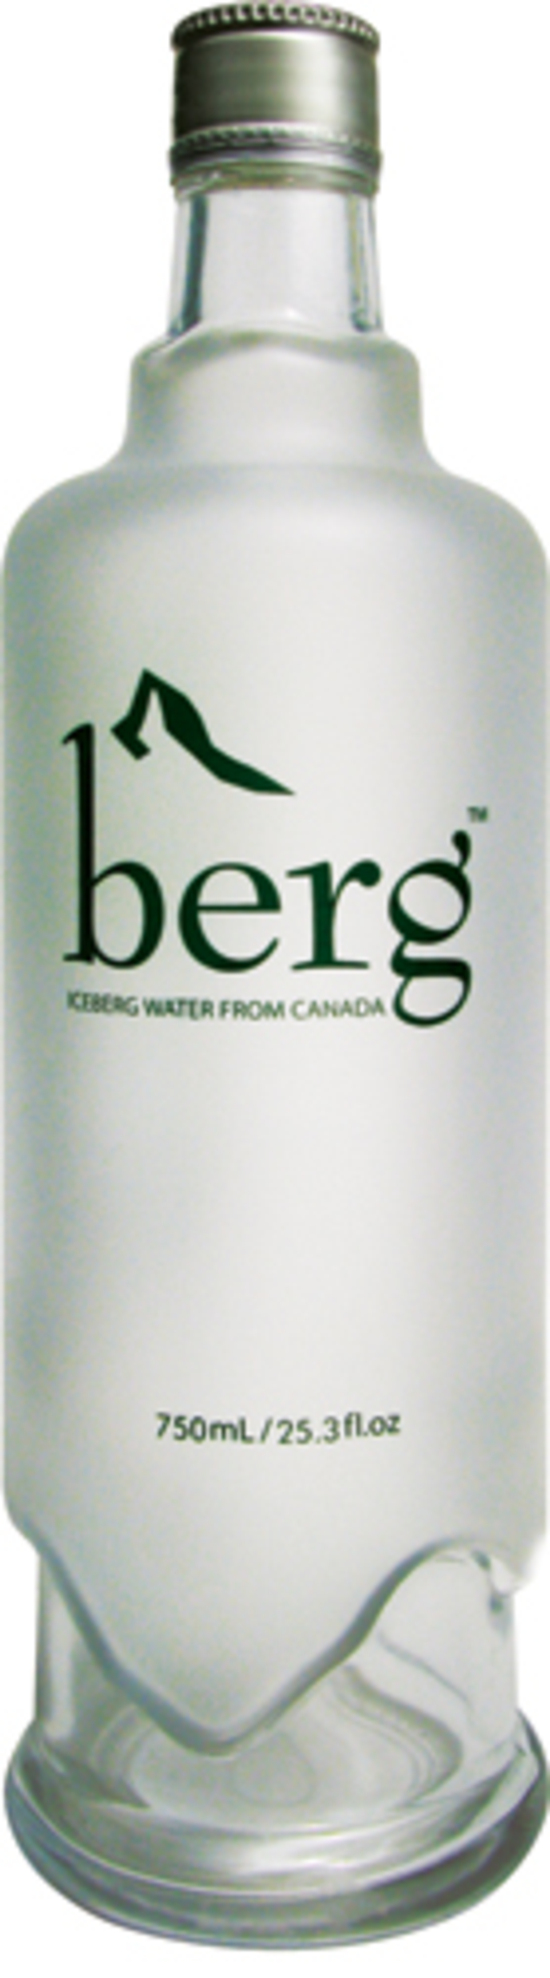 Berg_glass_bottle